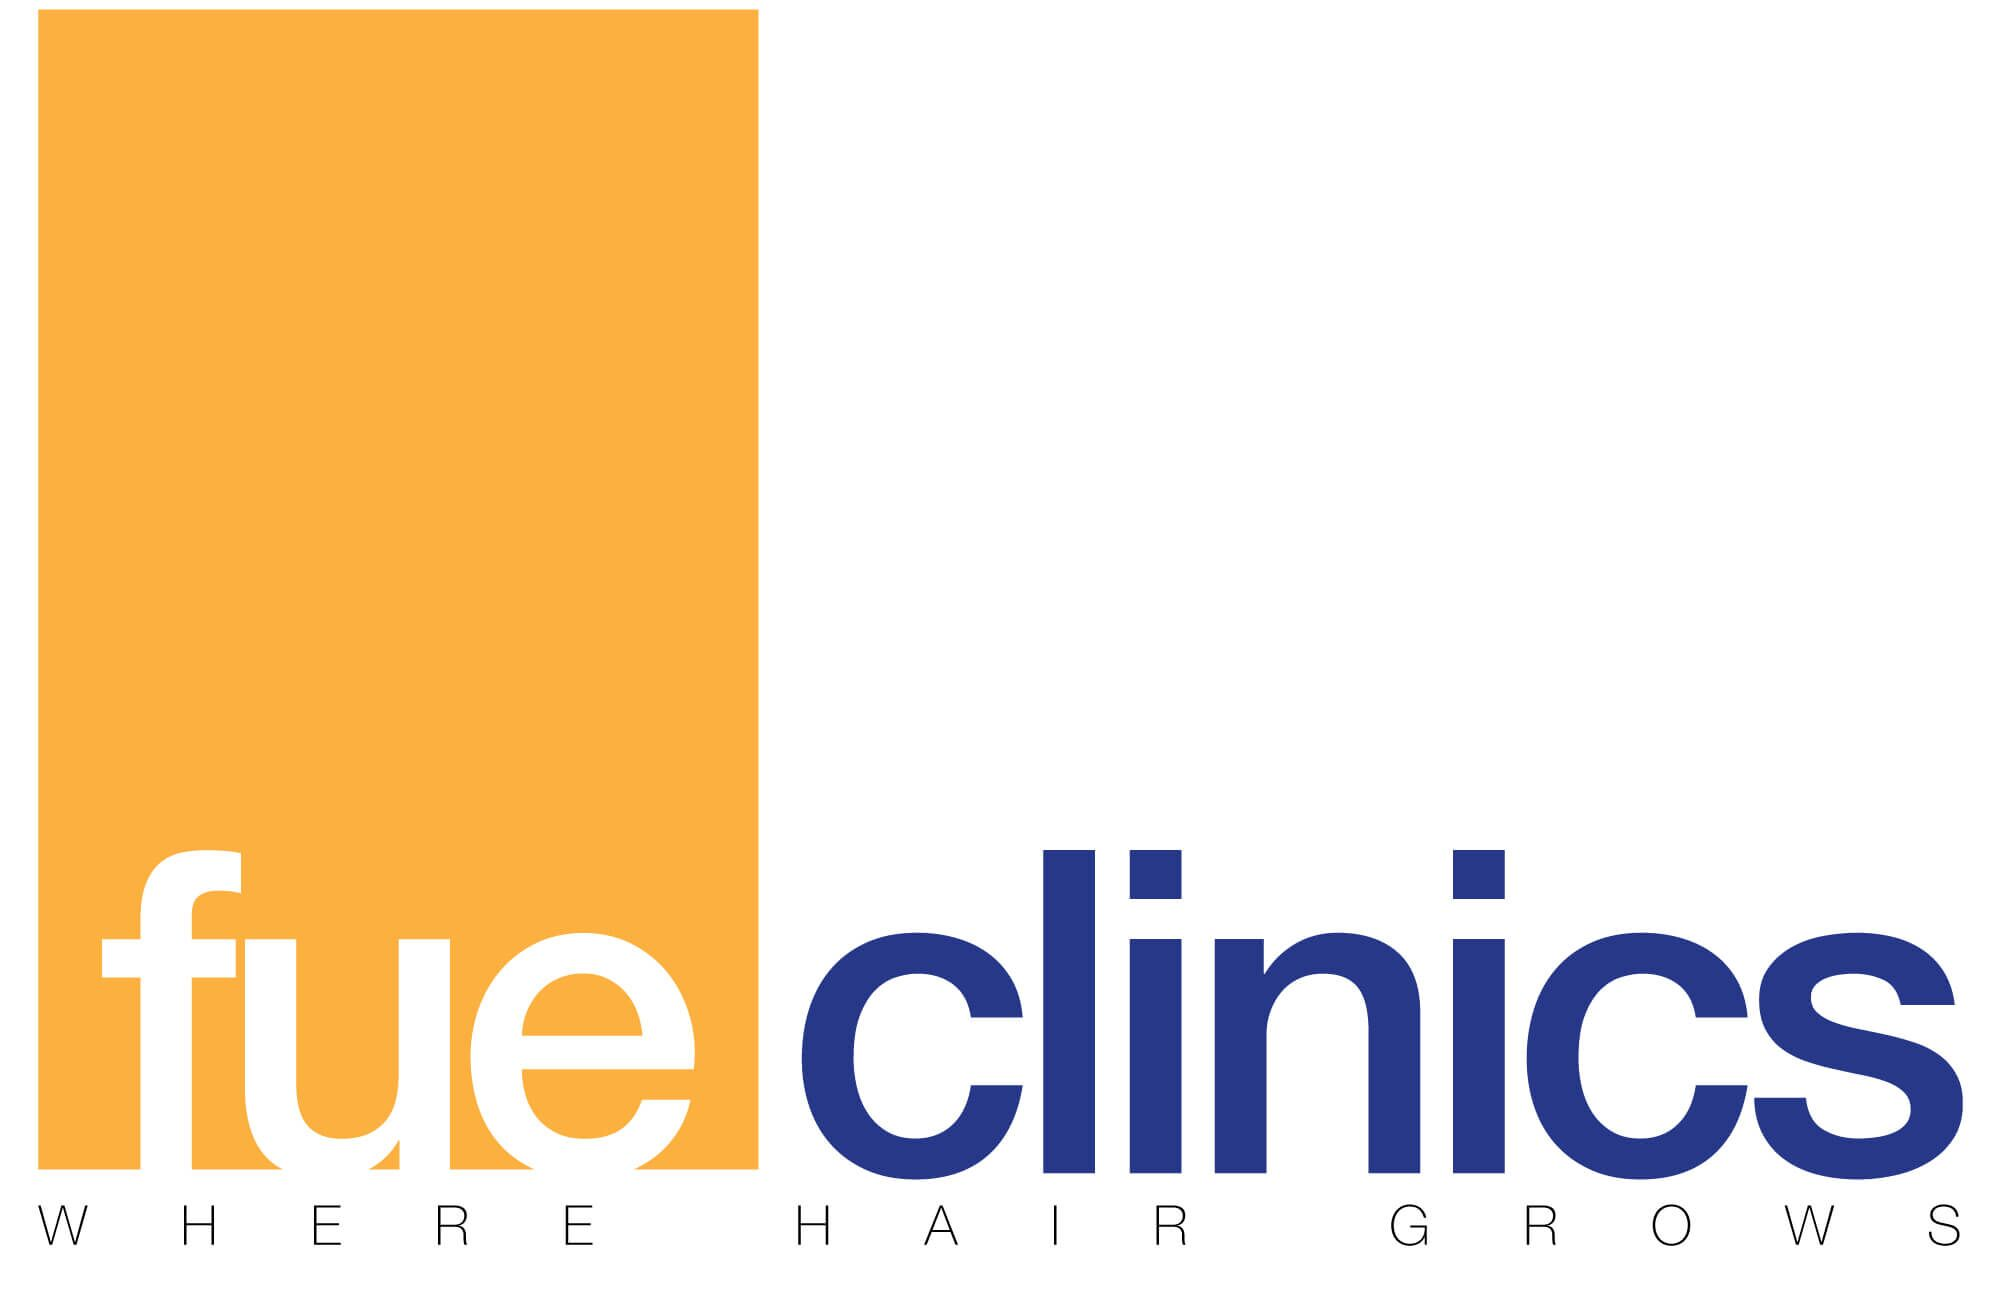 Logo of FUE Clinics Hair Consultants In Newcastle Upon Tyne, Tyne And Wear